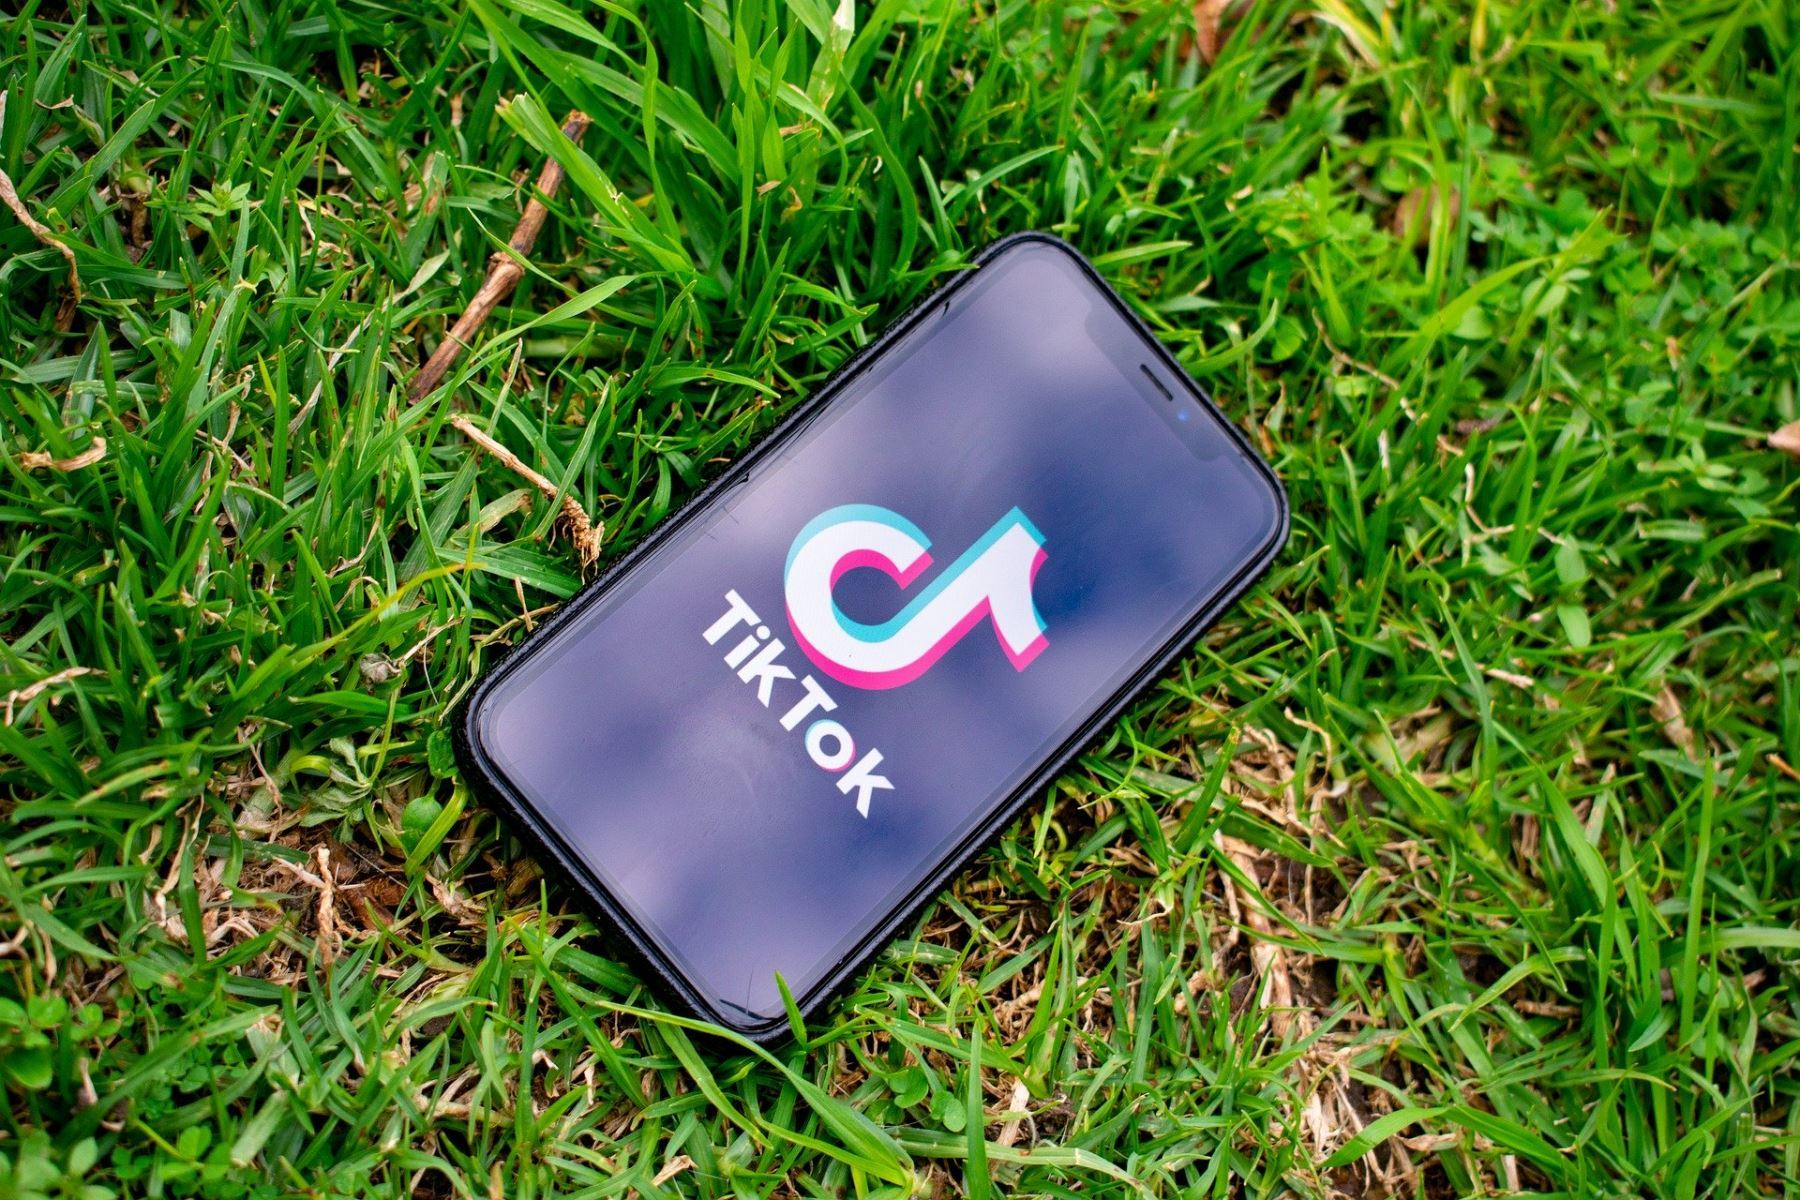 TikTok donates 60,000 protective suits to Peru during the fight against COVID-19.